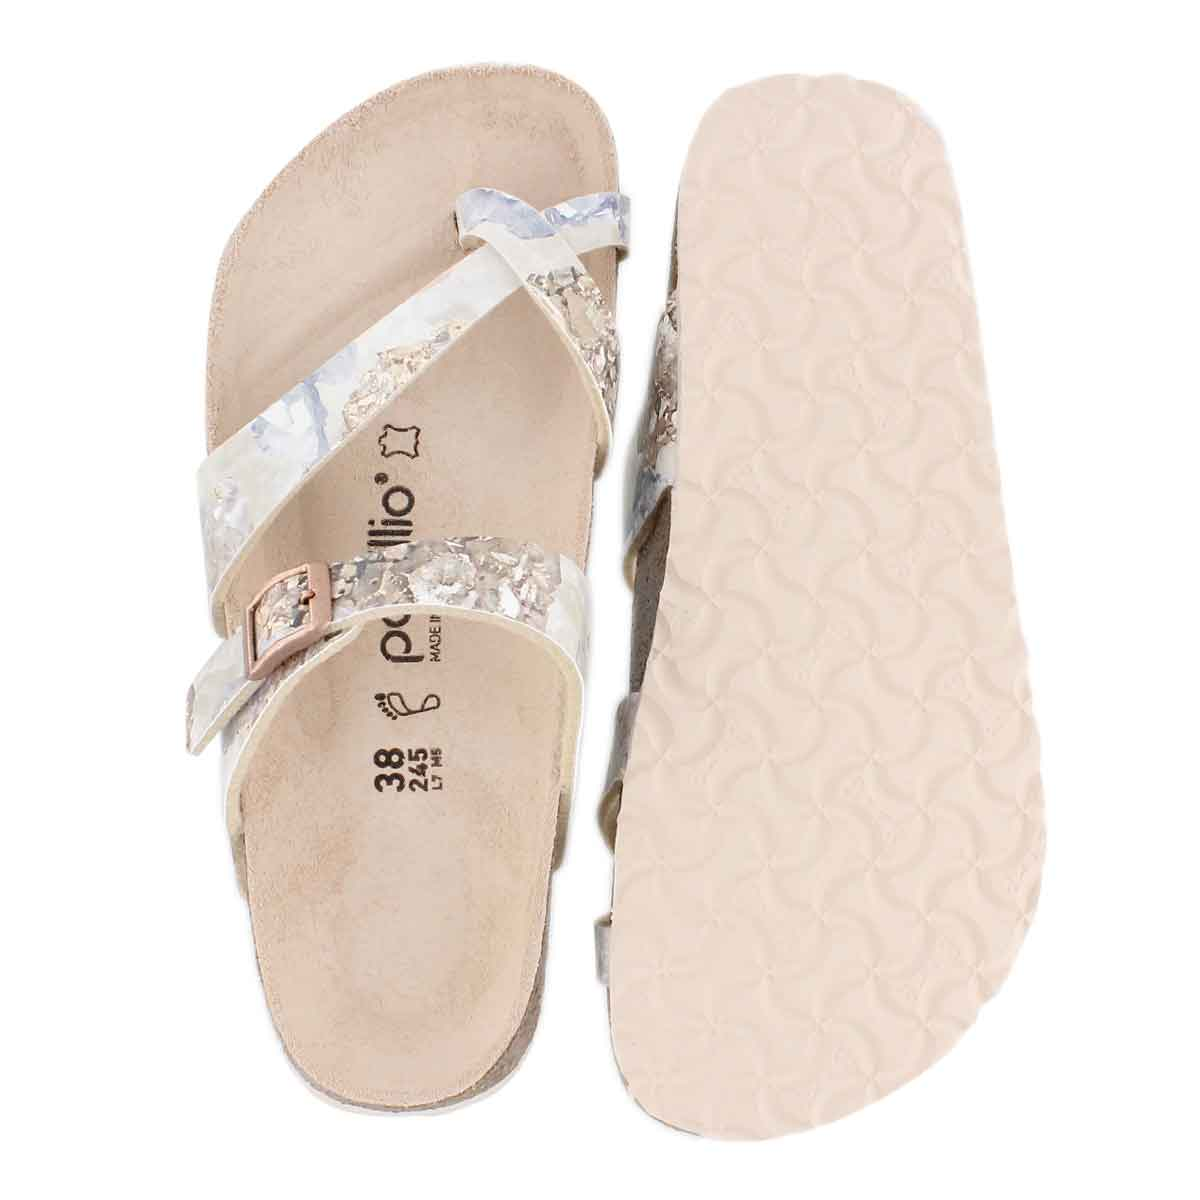 Lds Tabora BF cryst rose toe thong sndl